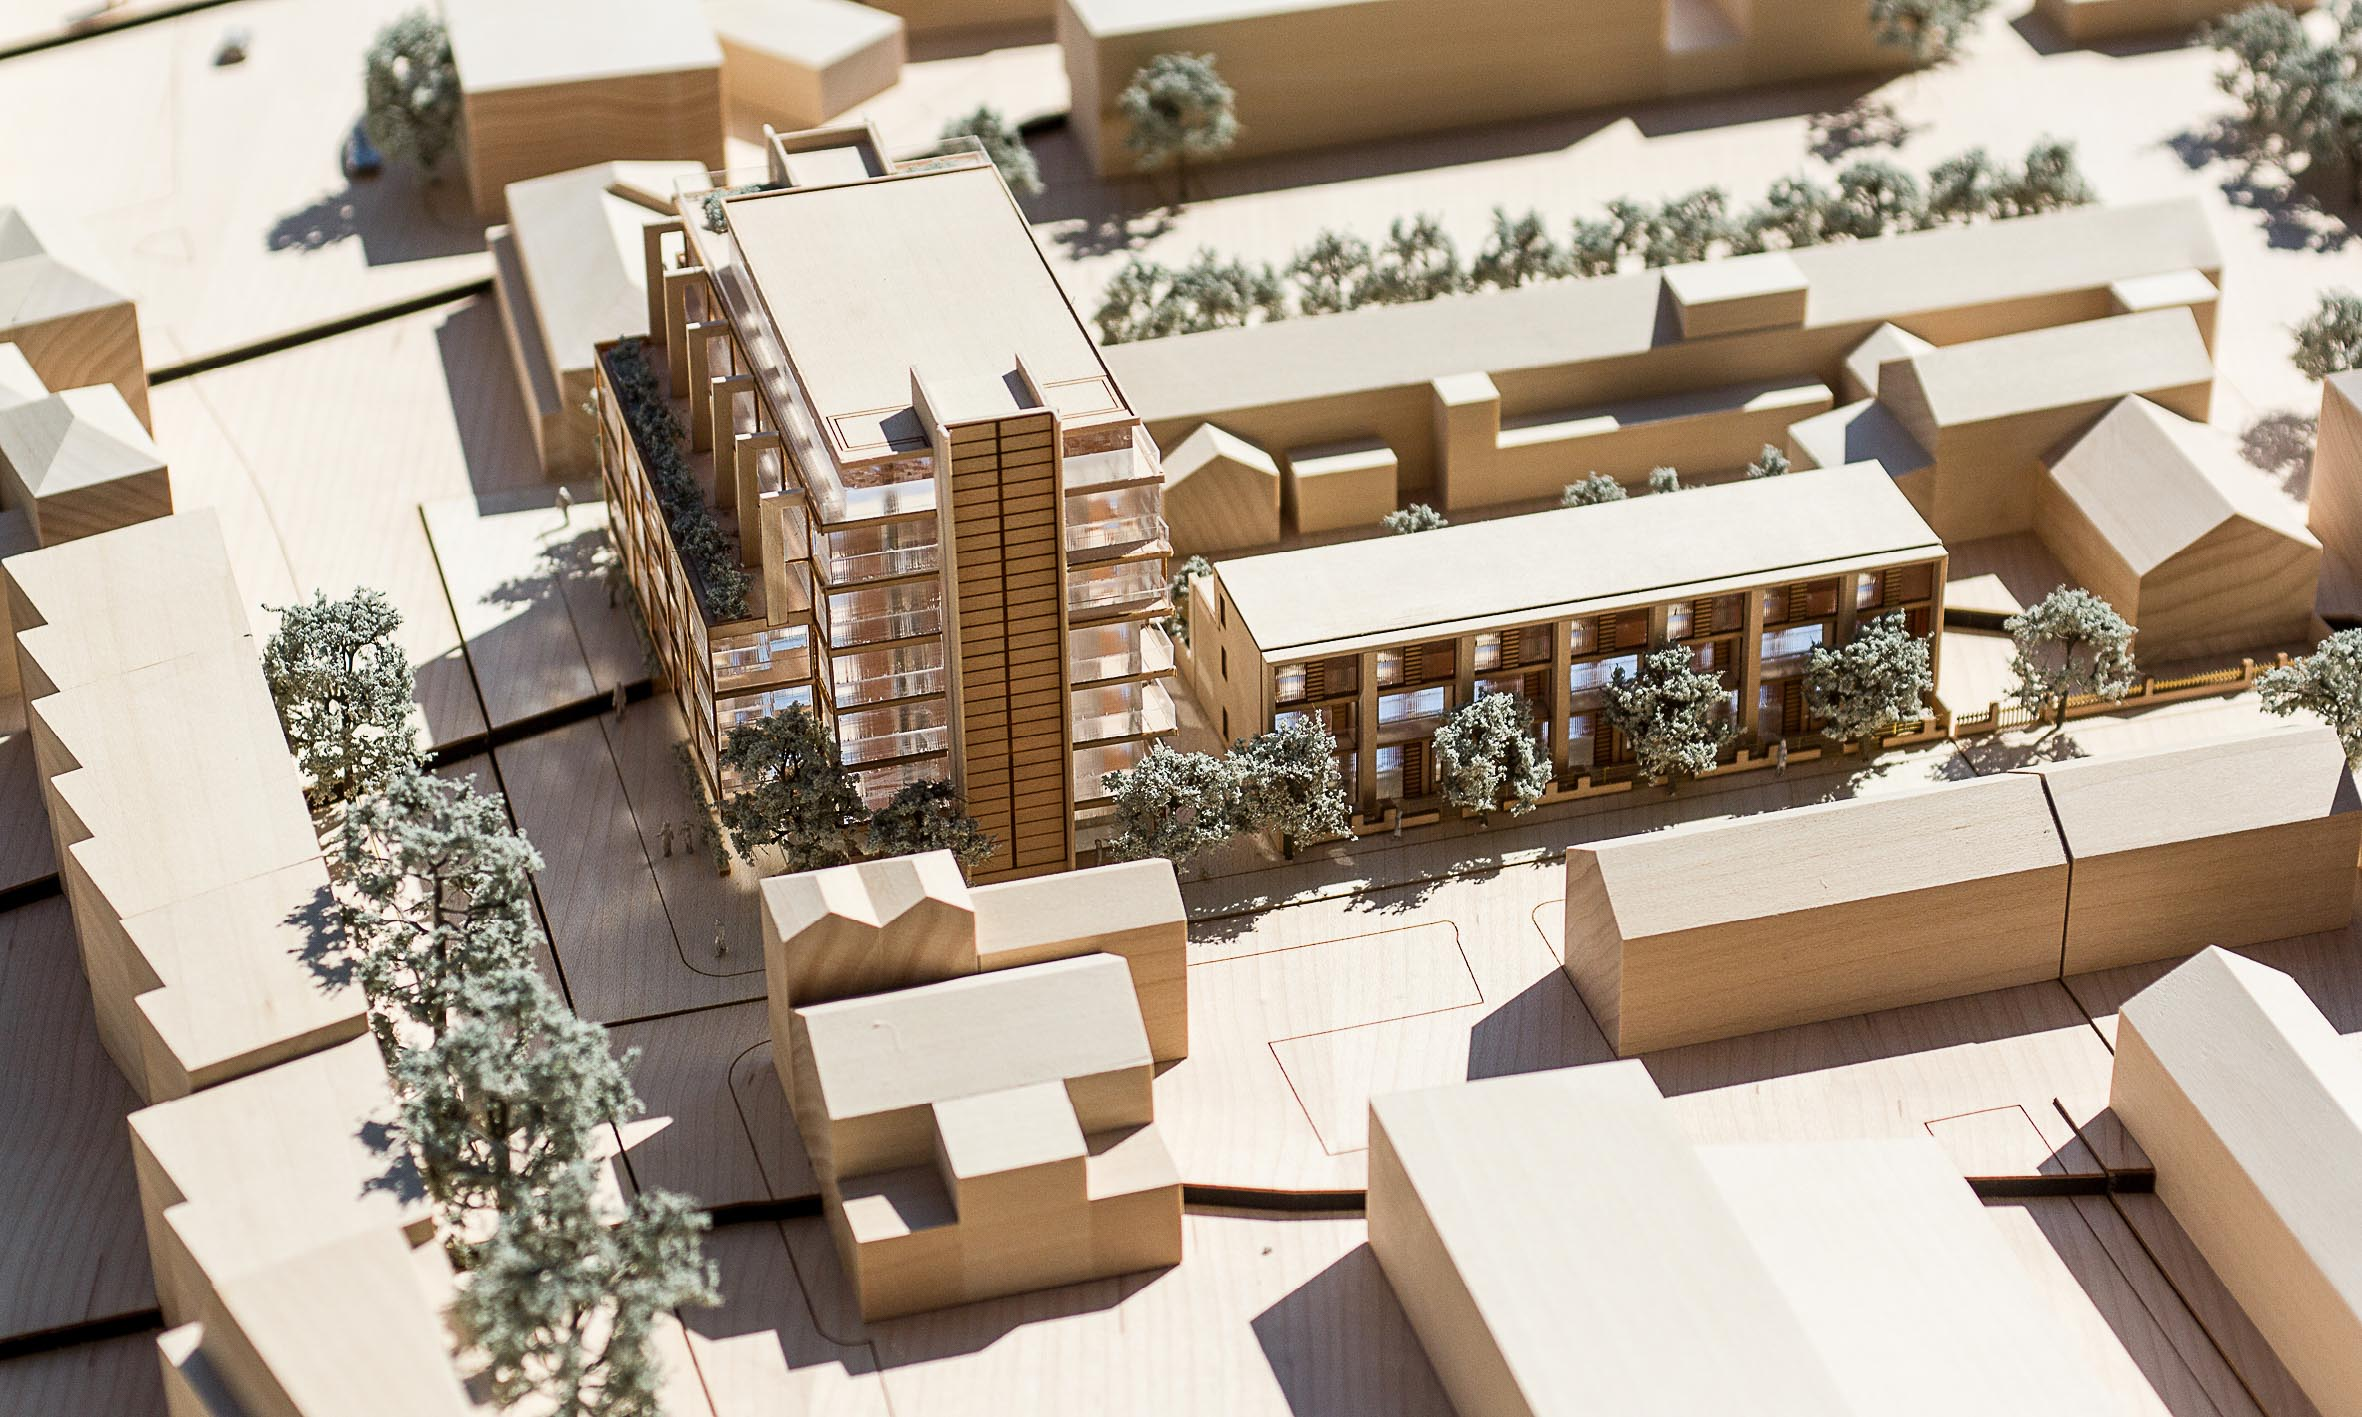 Architectural model of the proposed scheme. 40 apartments and 8 townhouses. The apartments are all dual aspect. The townhouses have private gardens that back onto the existing townhouses along George Street,